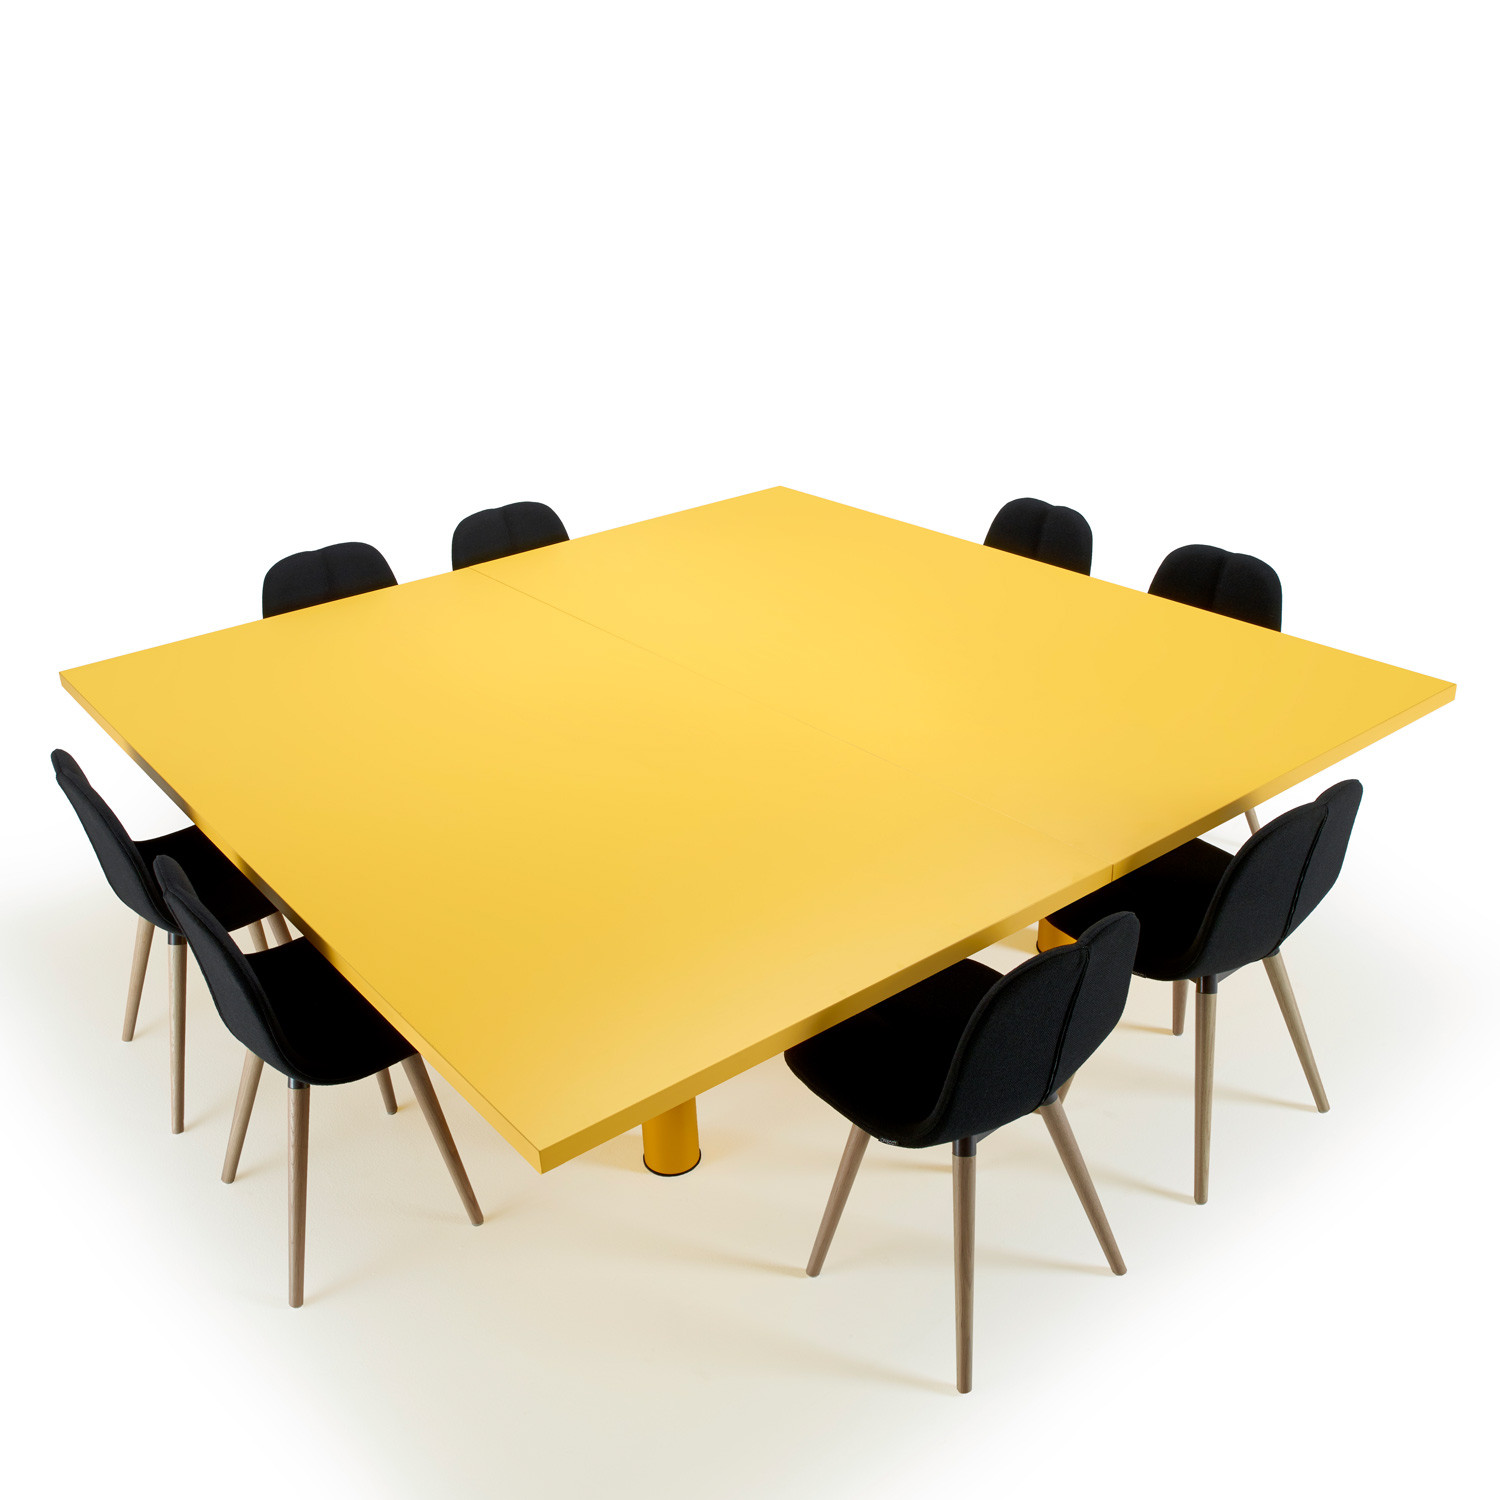 Table Xtra Large Meeting Table